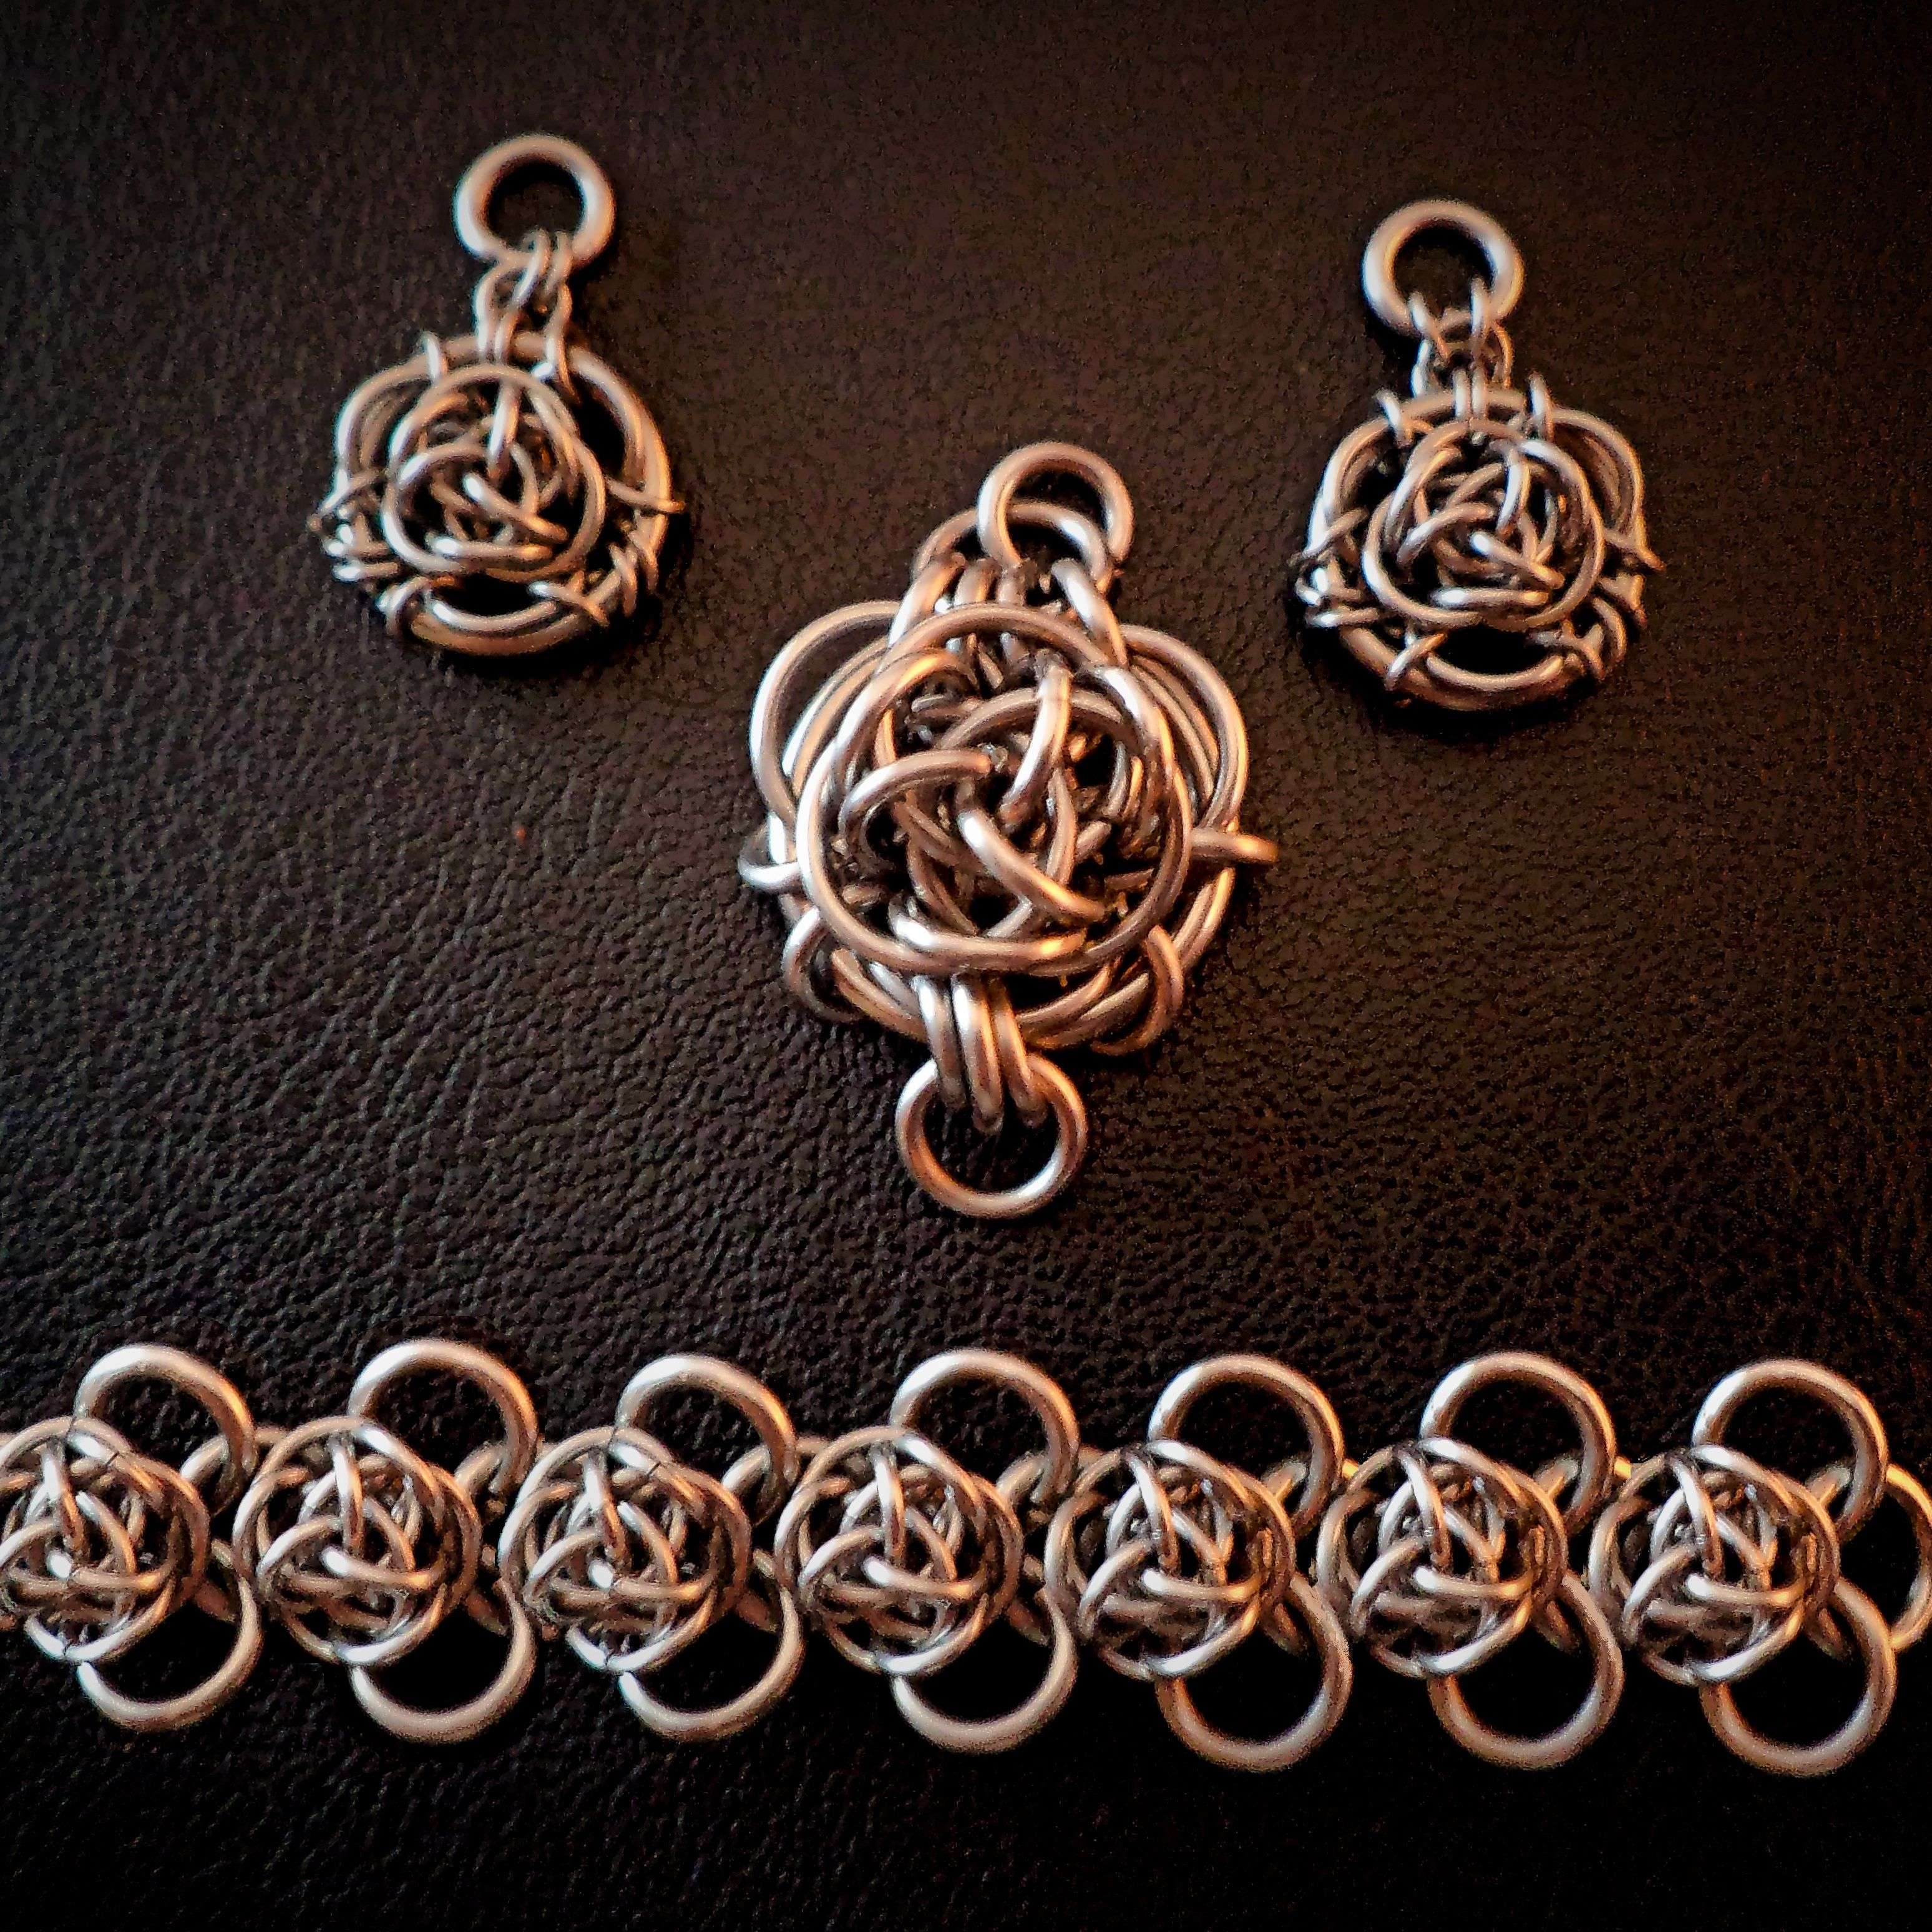 I've been playing with my Wild Rose Pendant design. Here is an earring set (without the ear wires as I am waiting on my order of surgical stainless ear wires to arrive), Wild Rose Heart Pendant for a necklace, and Wild Rose Bramble Bracelet in Stainless Steel.  https://www.facebook.com/BrilliantTwistedSkulls?fref=nf